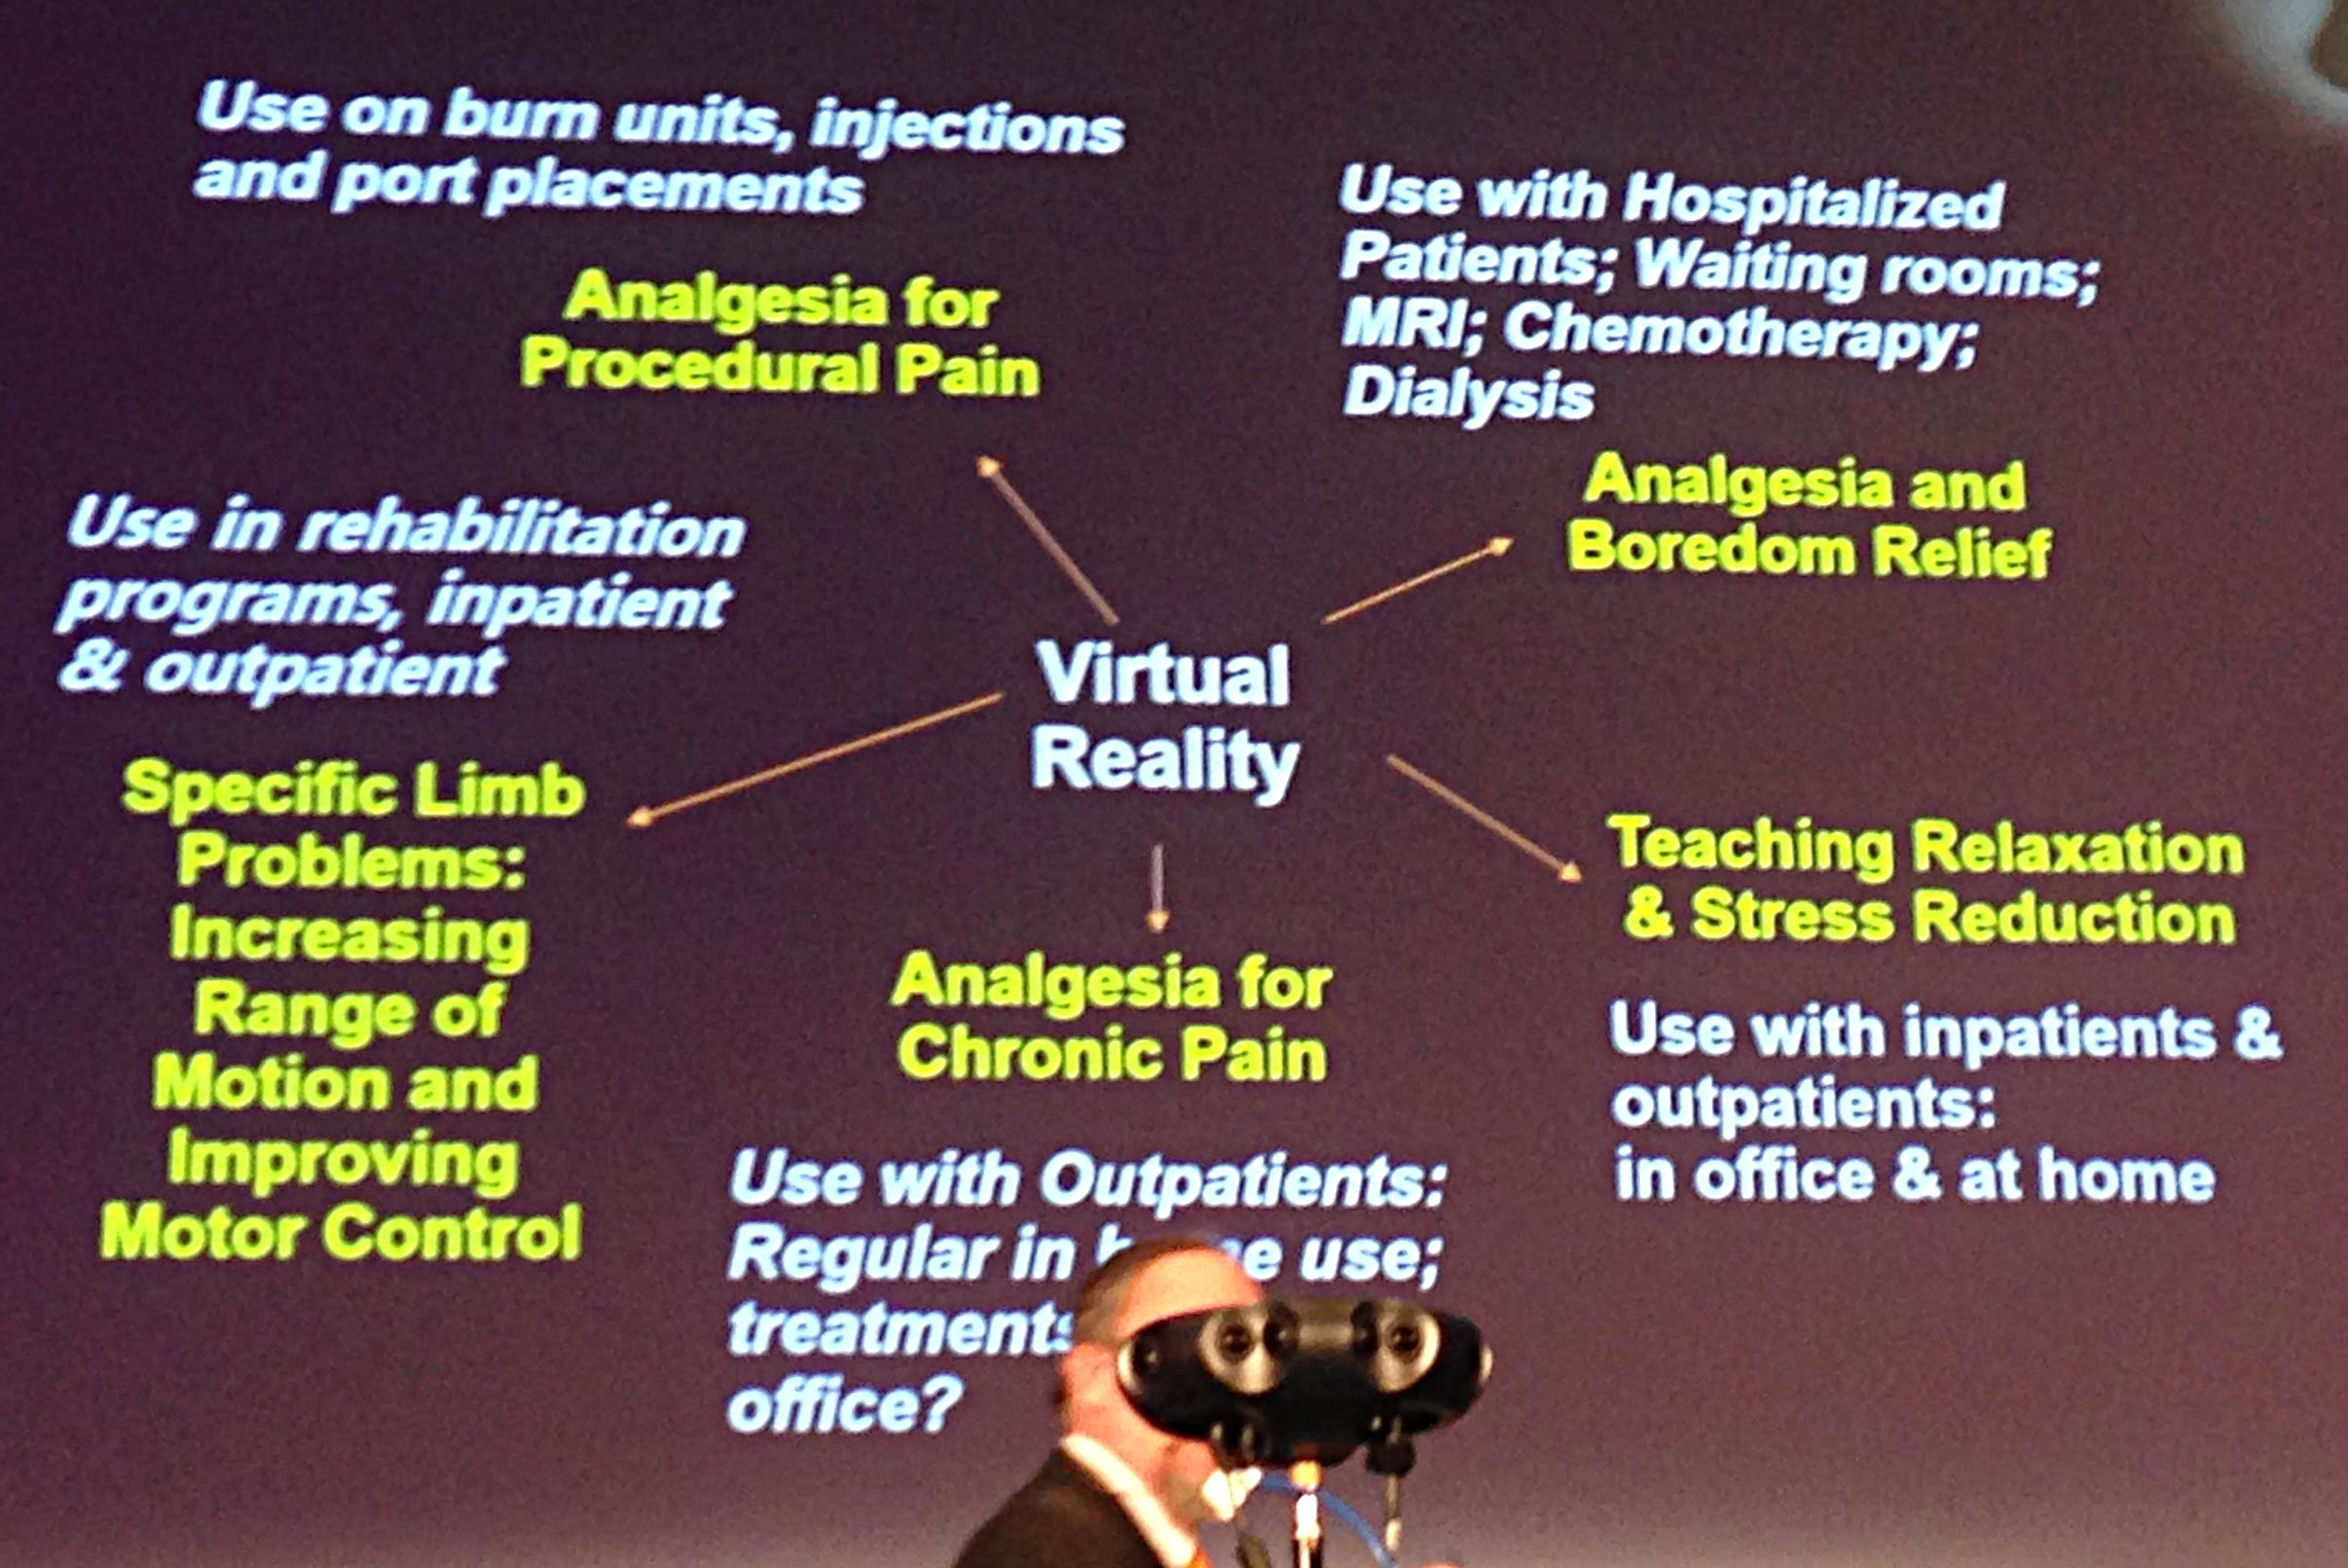 Ted Jones outlining his use of VR -